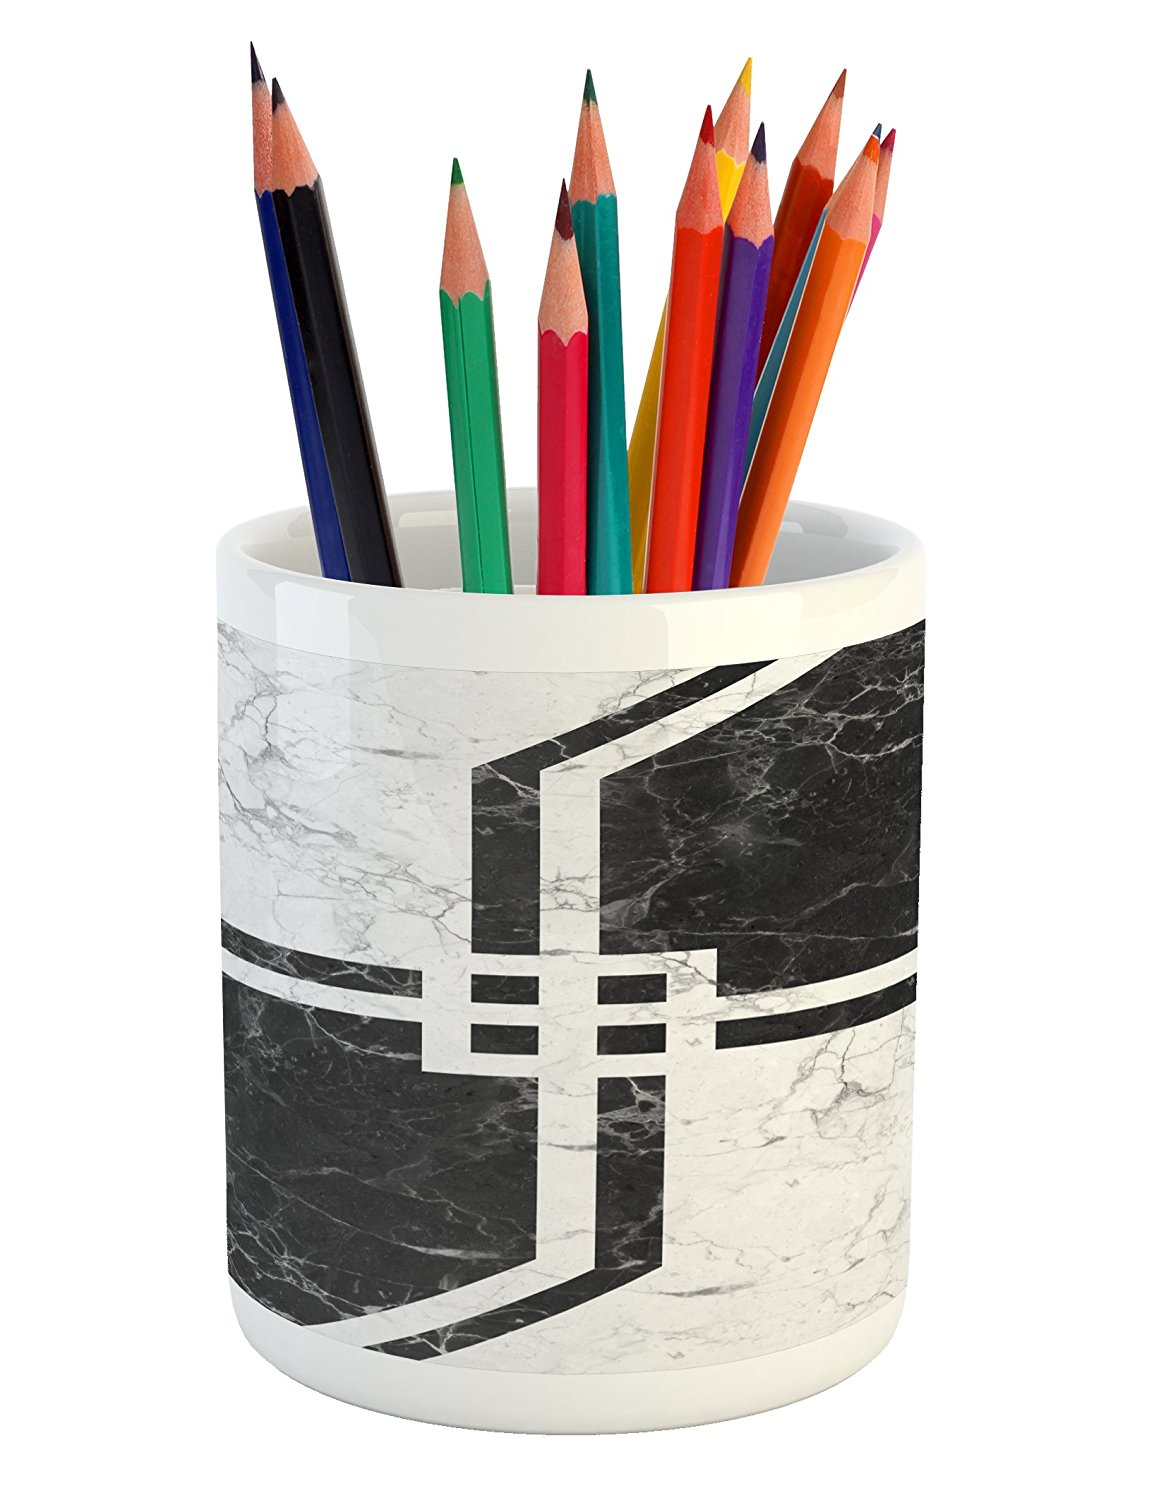 Marble Pencil Pen Holder by Lunarable, Parallel Vintage Bands Motif with Geometric Shapes on Murky Background Print, Printed Ceramic Pencil Pen Holder for Desk Office Accessory, Pearl Black Dust